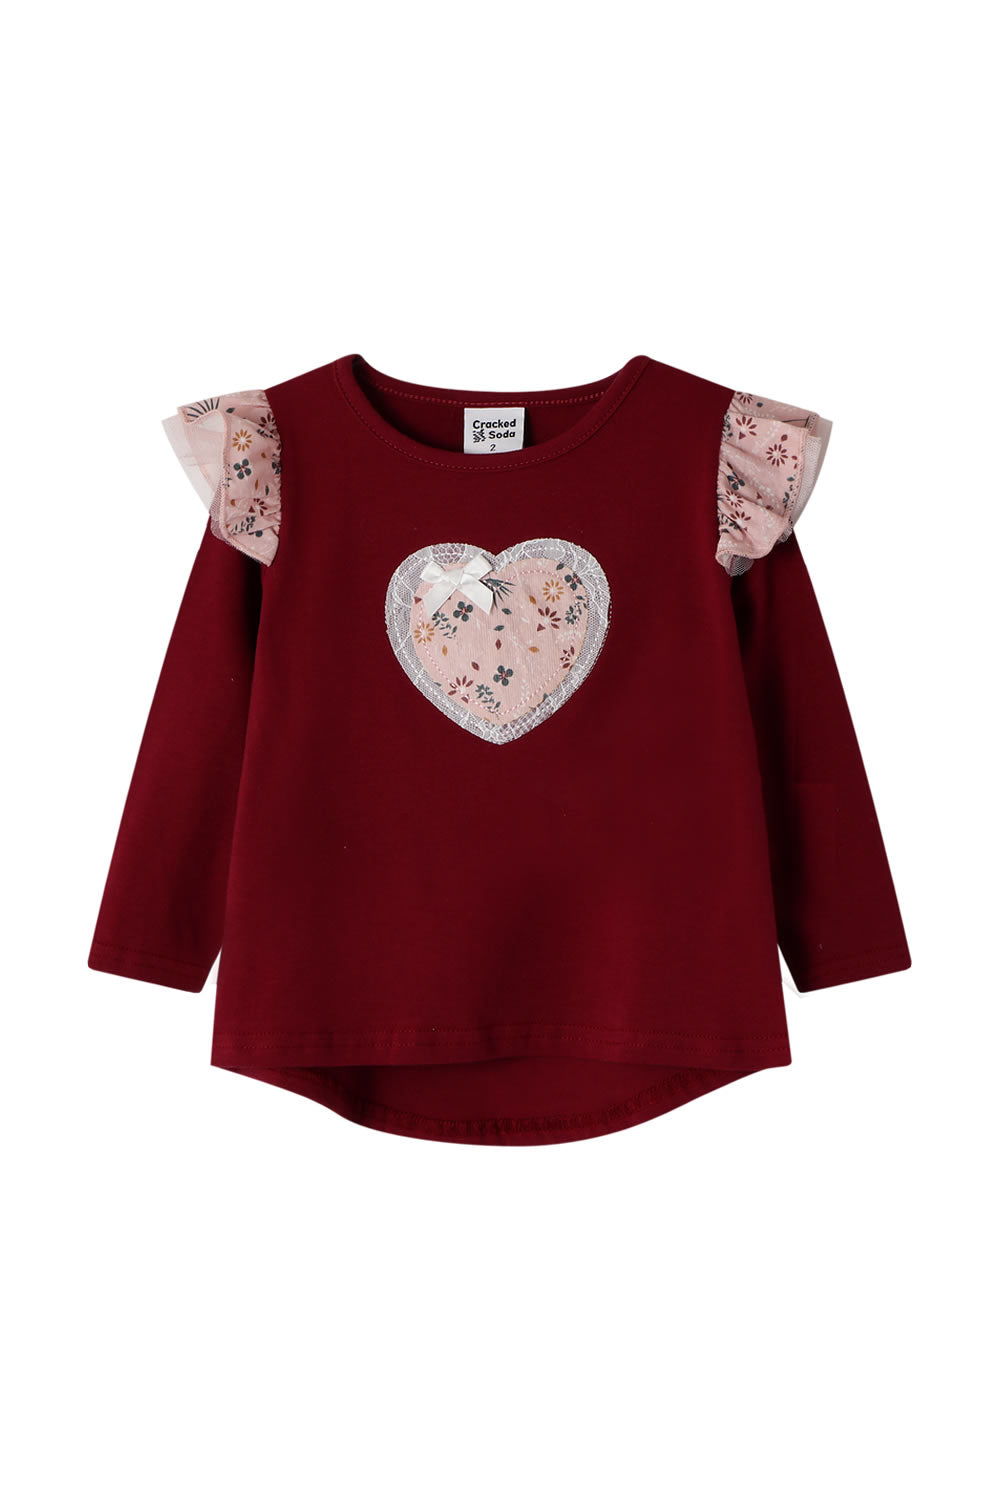 Cracked Soda Lola Heart Top